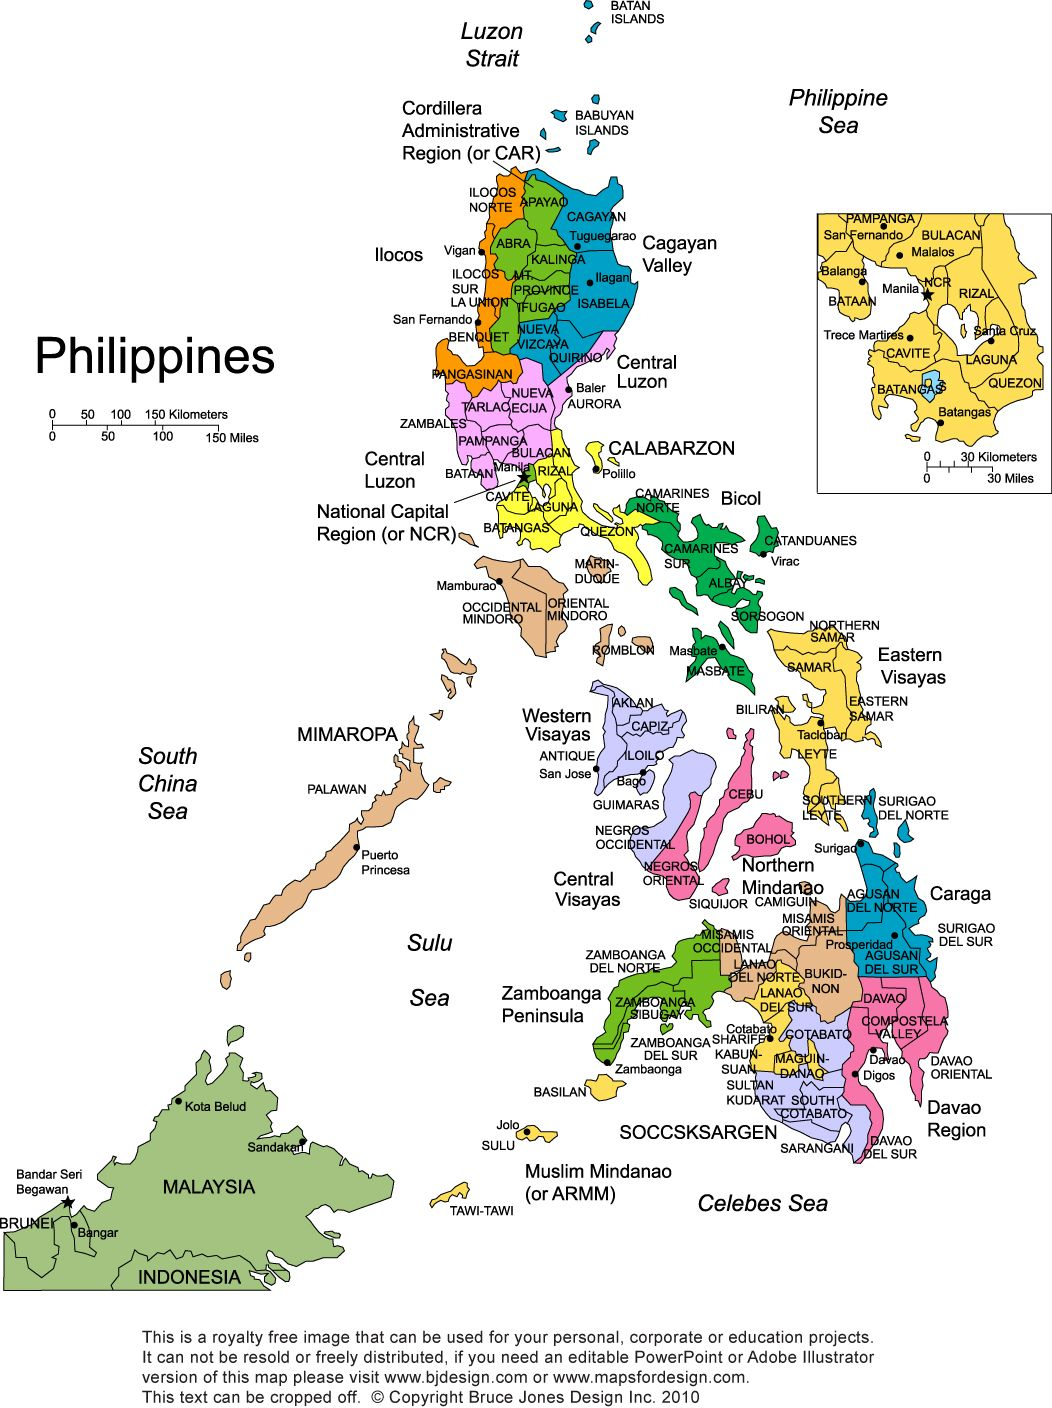 My family is from Sulu and Iloilo. Maybe one day I can visit ...